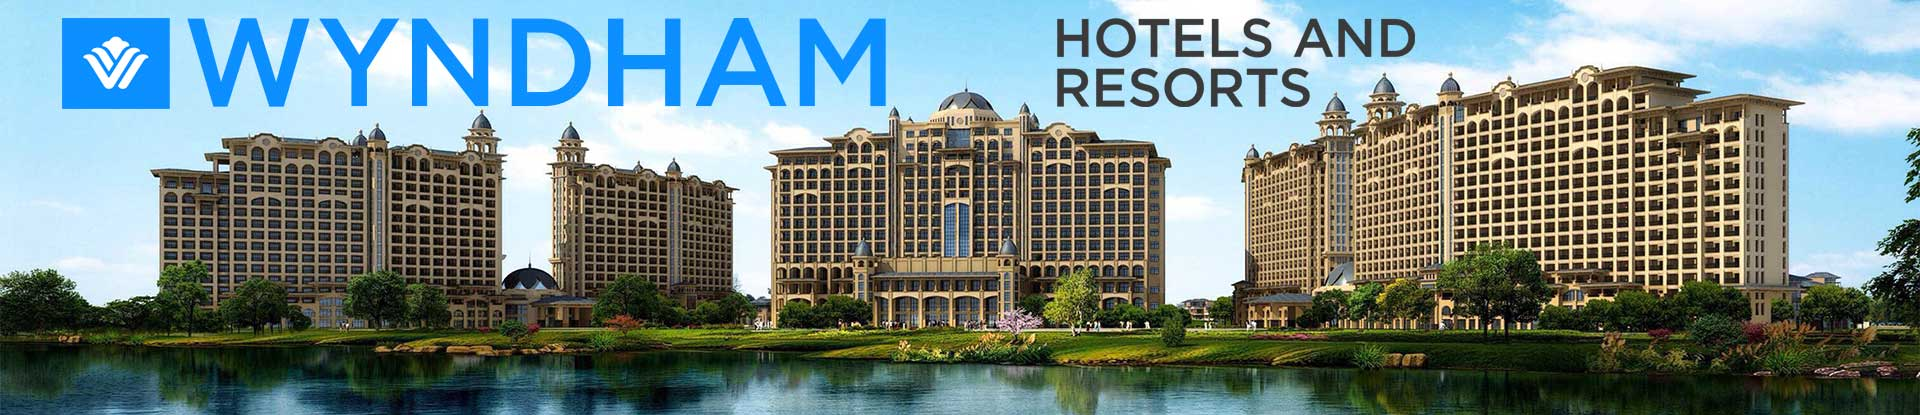 WYNDHAM HOTEL GROUP